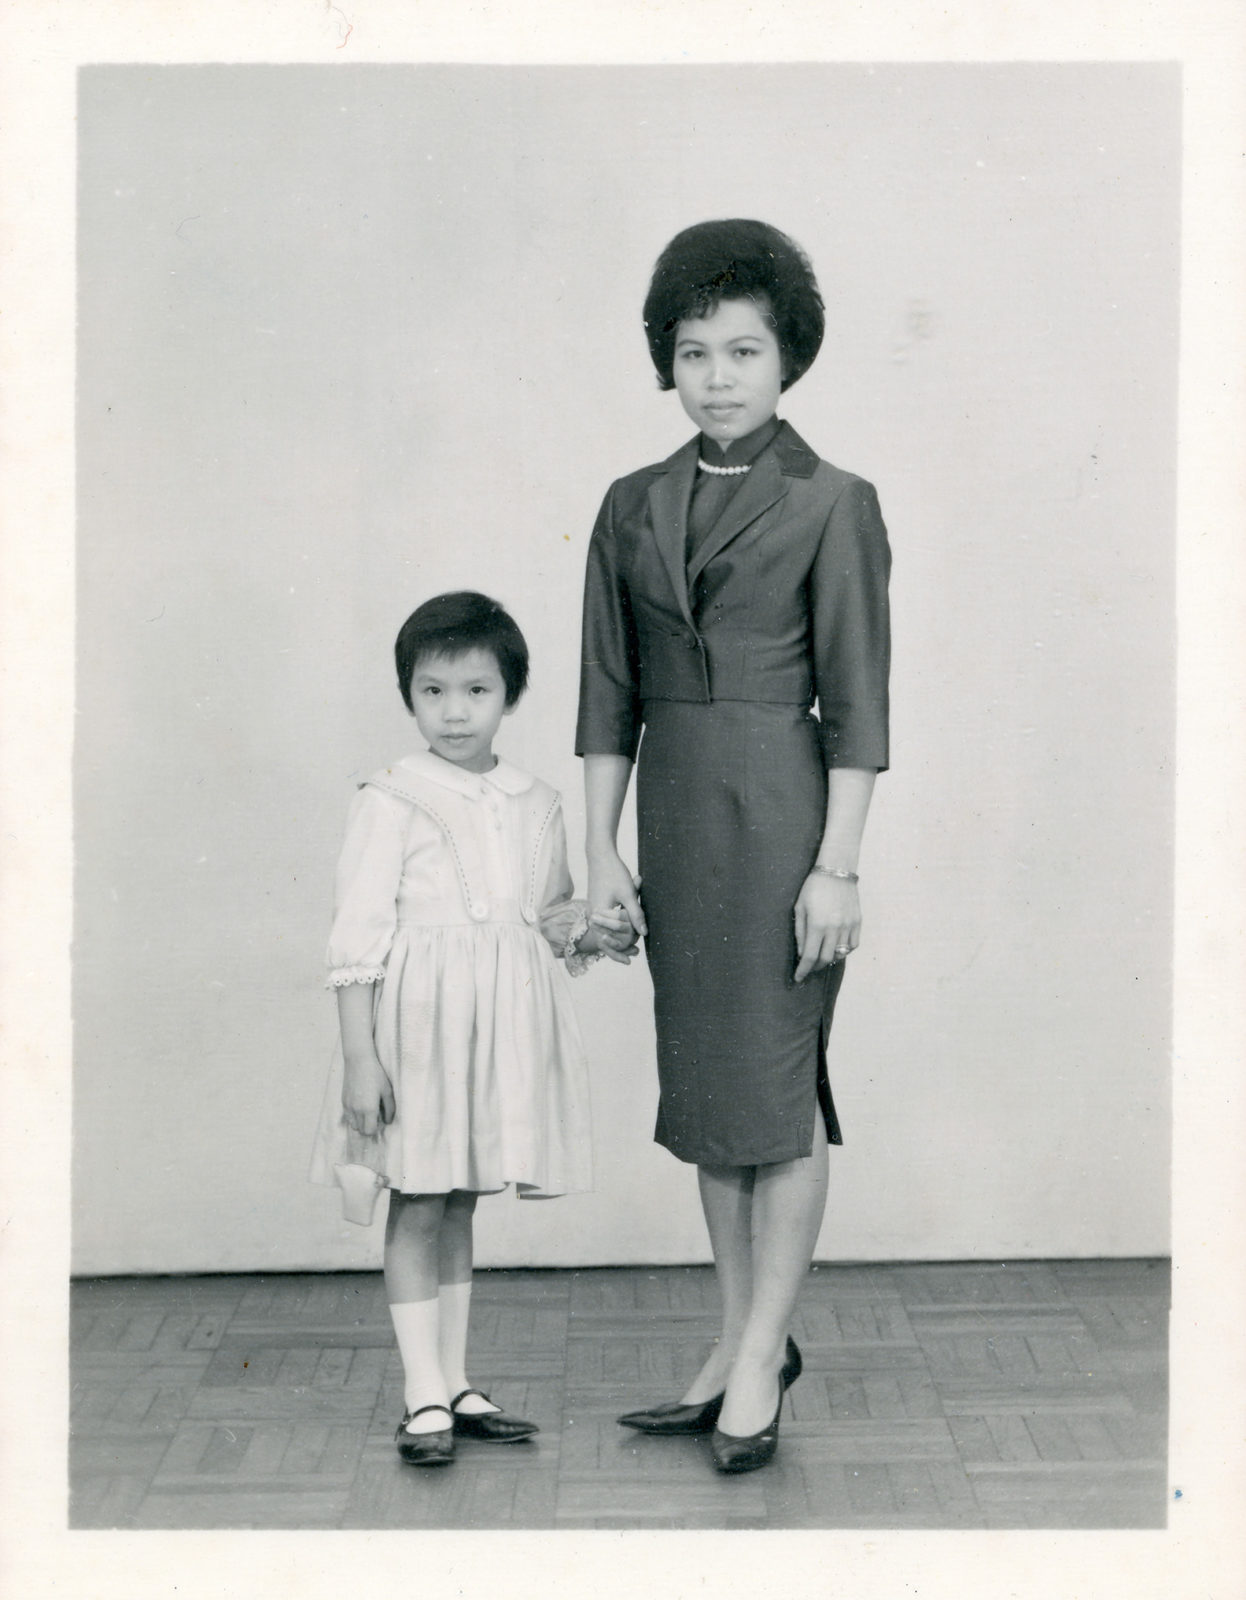 Mrs. Wong and daughter posing for photo circa 1960.